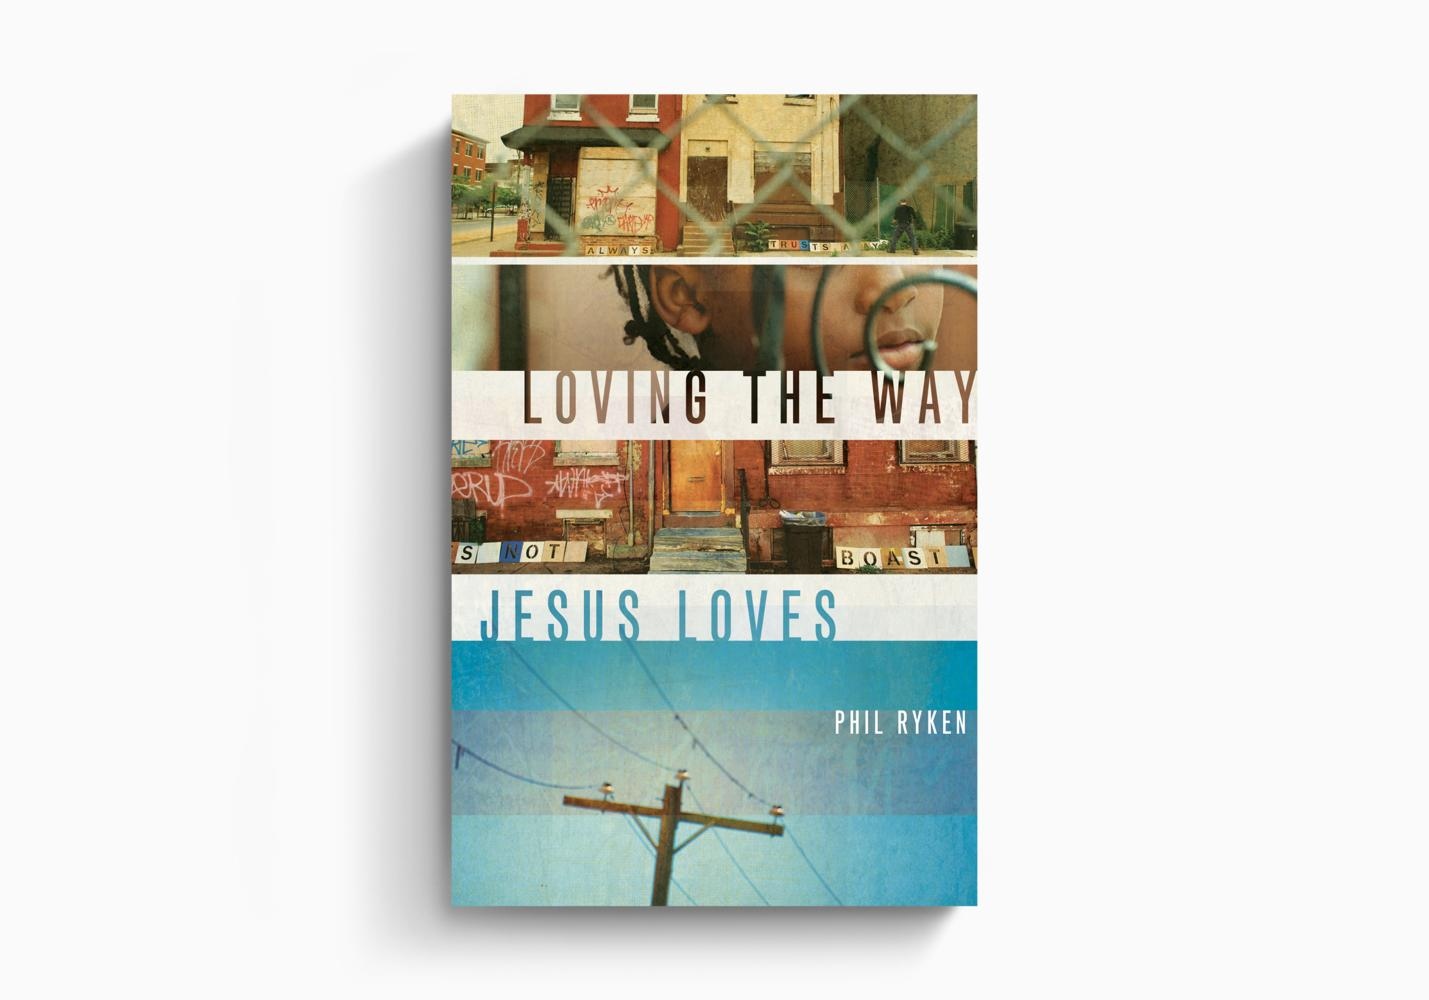 Loving the Way Jesus Loves